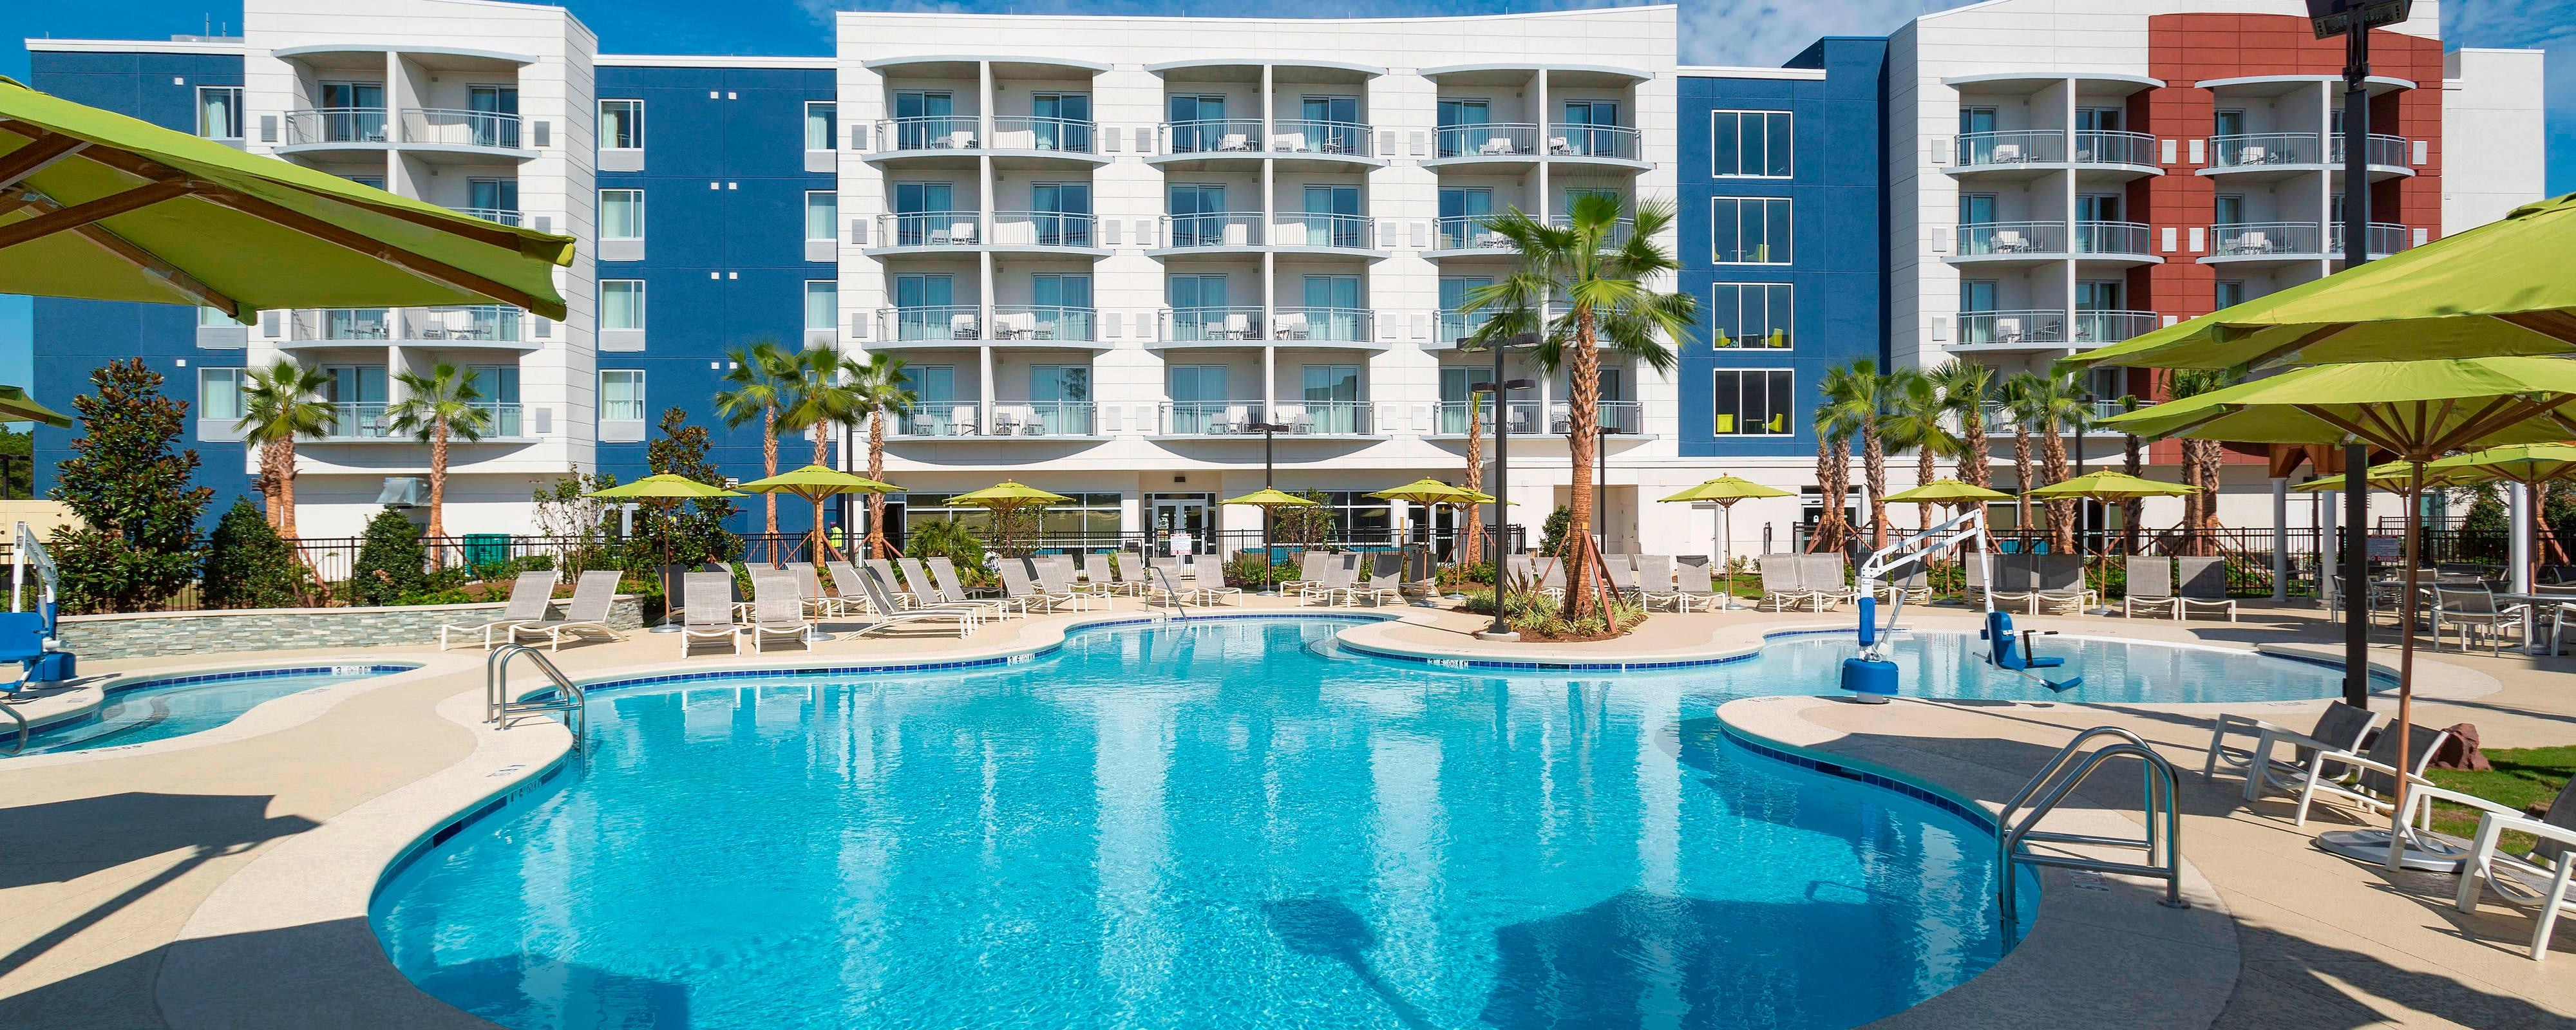 Springhill Suites Orange Beach